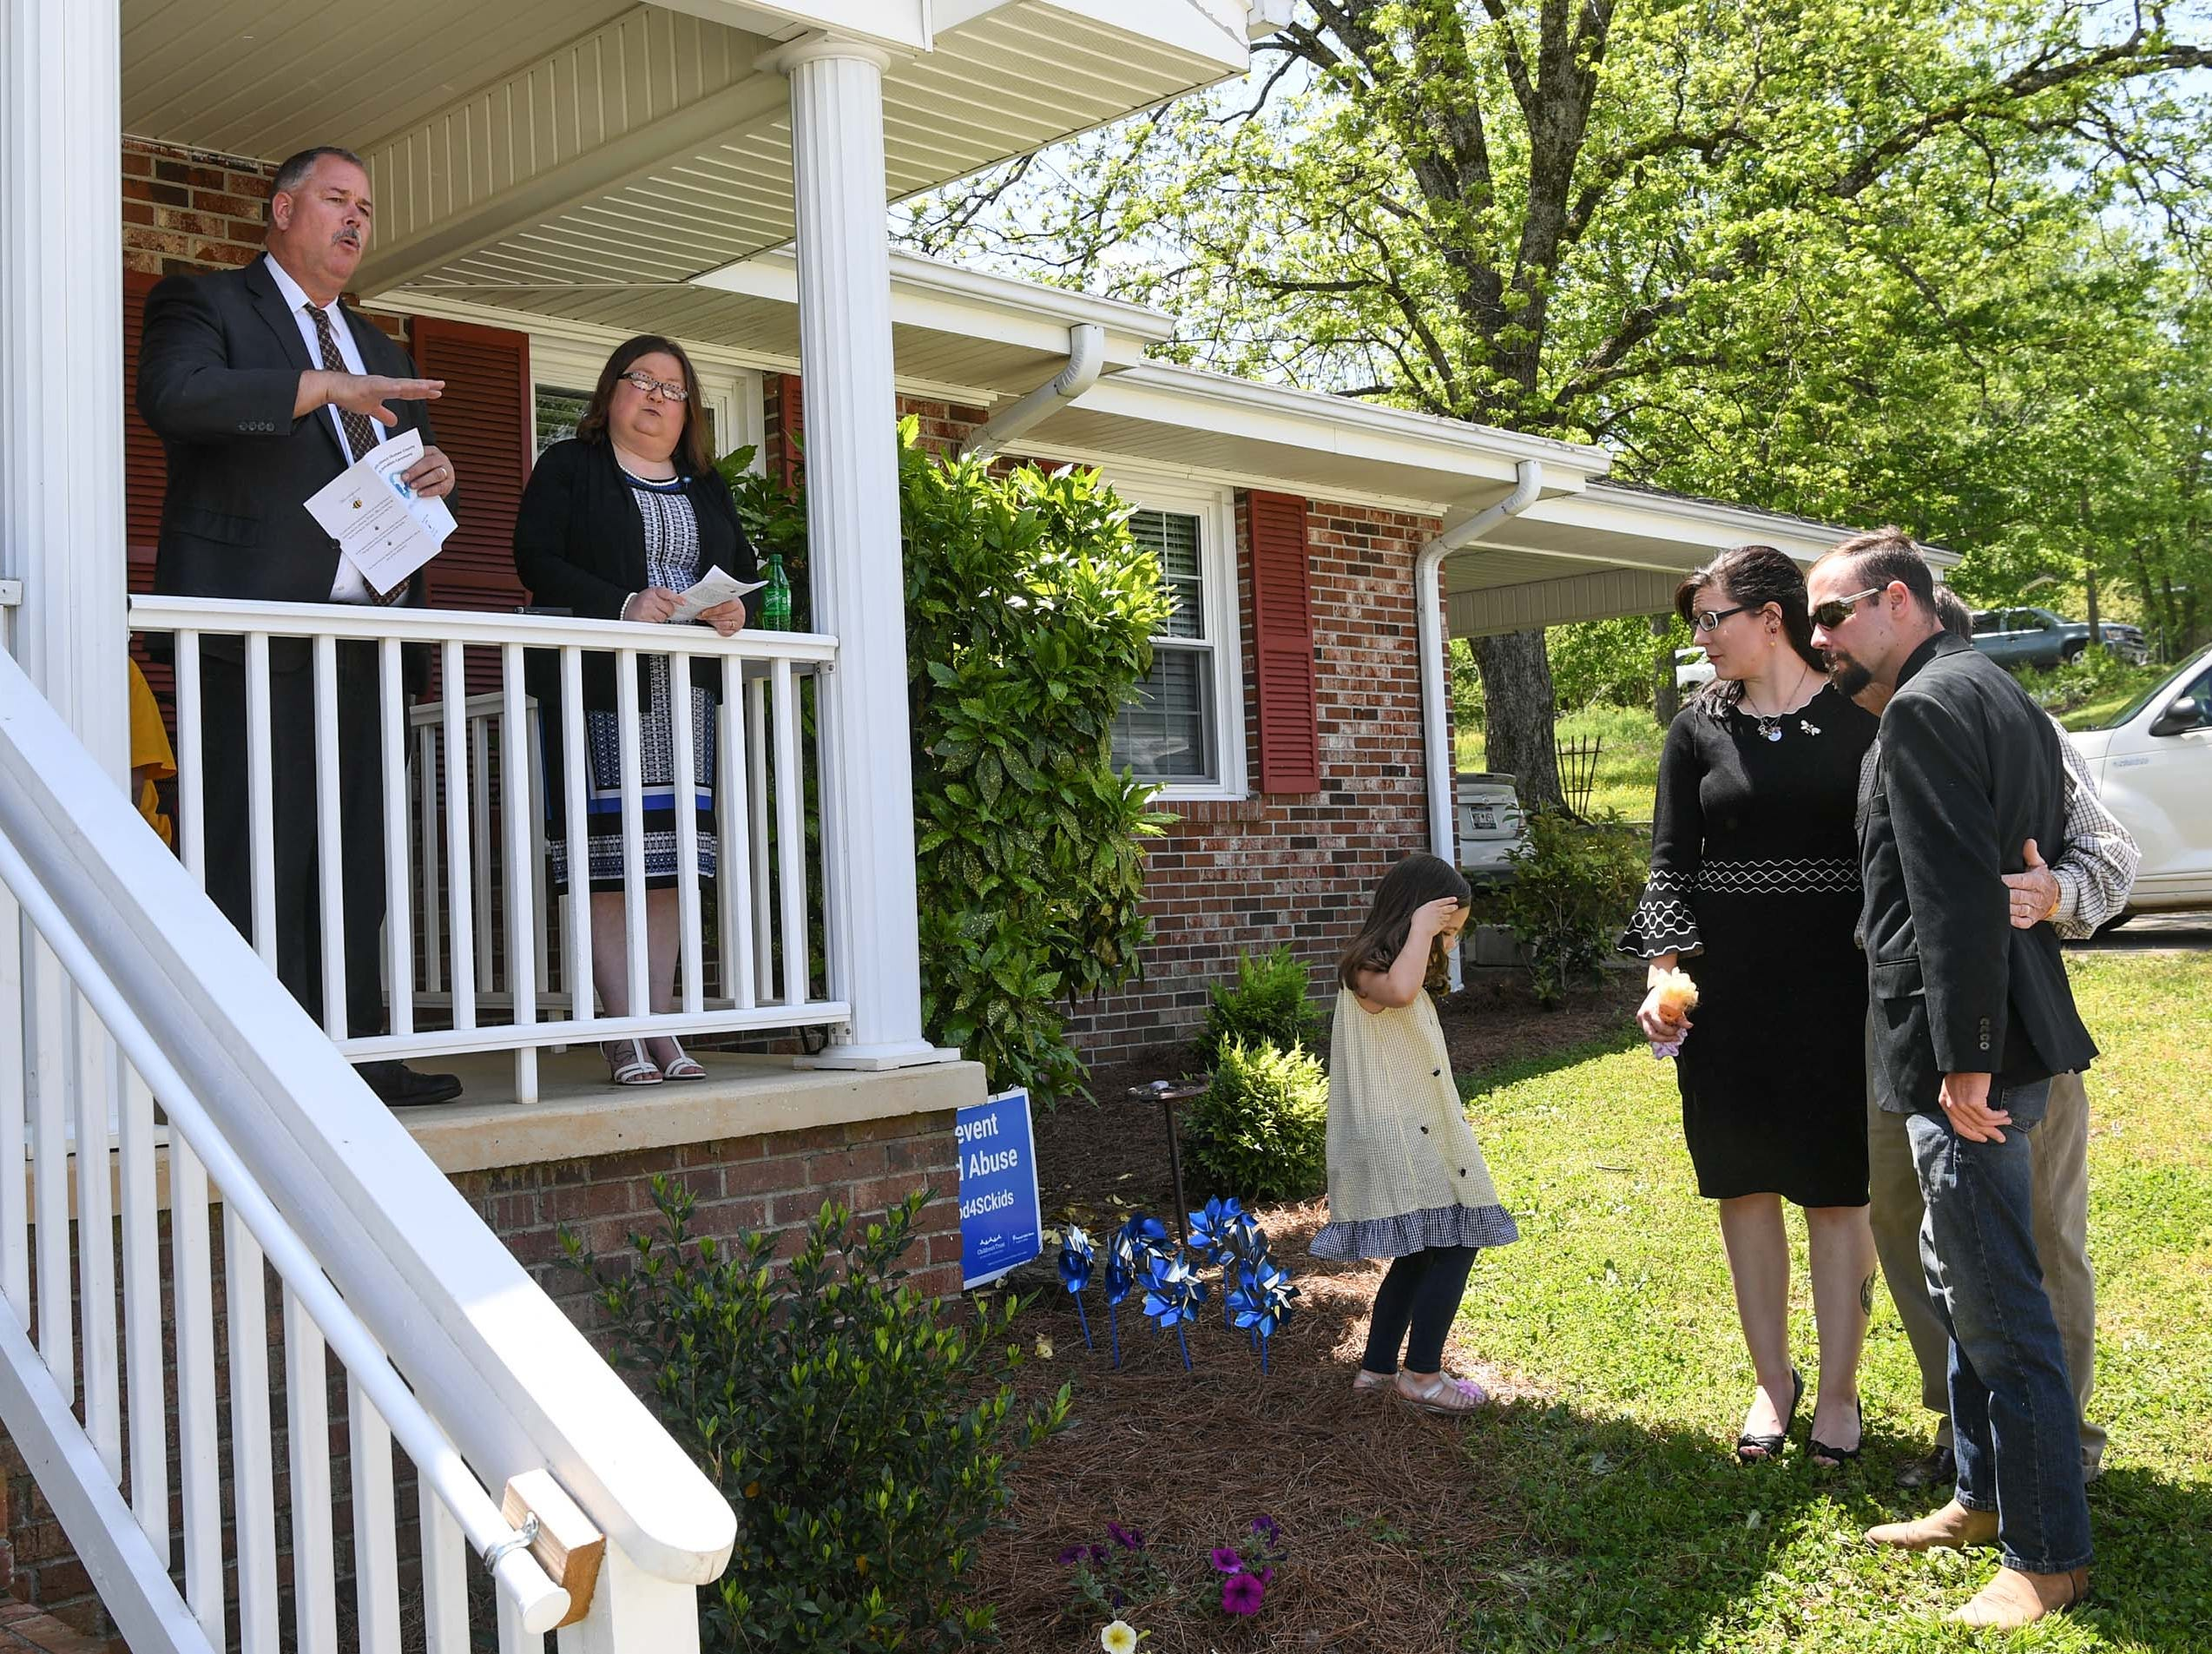 "David Wagner, left, Tenth Circuit Solictor, and Tracy Whitten Bowie, right, Foothills Alliance Executive Director, begin an office dedication of the Foothills Alliance Oconee County Gwynnie Bee House, with family of the late Gwynne Ann-Marie Hess, right, in Walhalla Friday. Foothills Alliance, who with partners provides education, advocacy, and treatment services to prevent sexual assault trauma and child abuse services in Anderson and Oconee Counties, branched out from their Anderson office with an office in Walhalla last August. Gwynne Ann-Marie Hess, ""Gwynnie Bee"", died in 2017 from child abuse, and the office was renamed after her Friday in the presence of family, law enforcement, Sen. Thomas Alexander, Oconee County Sheriff Michael Crenshaw, and Tenth Circuit Solicitor David Wagner."